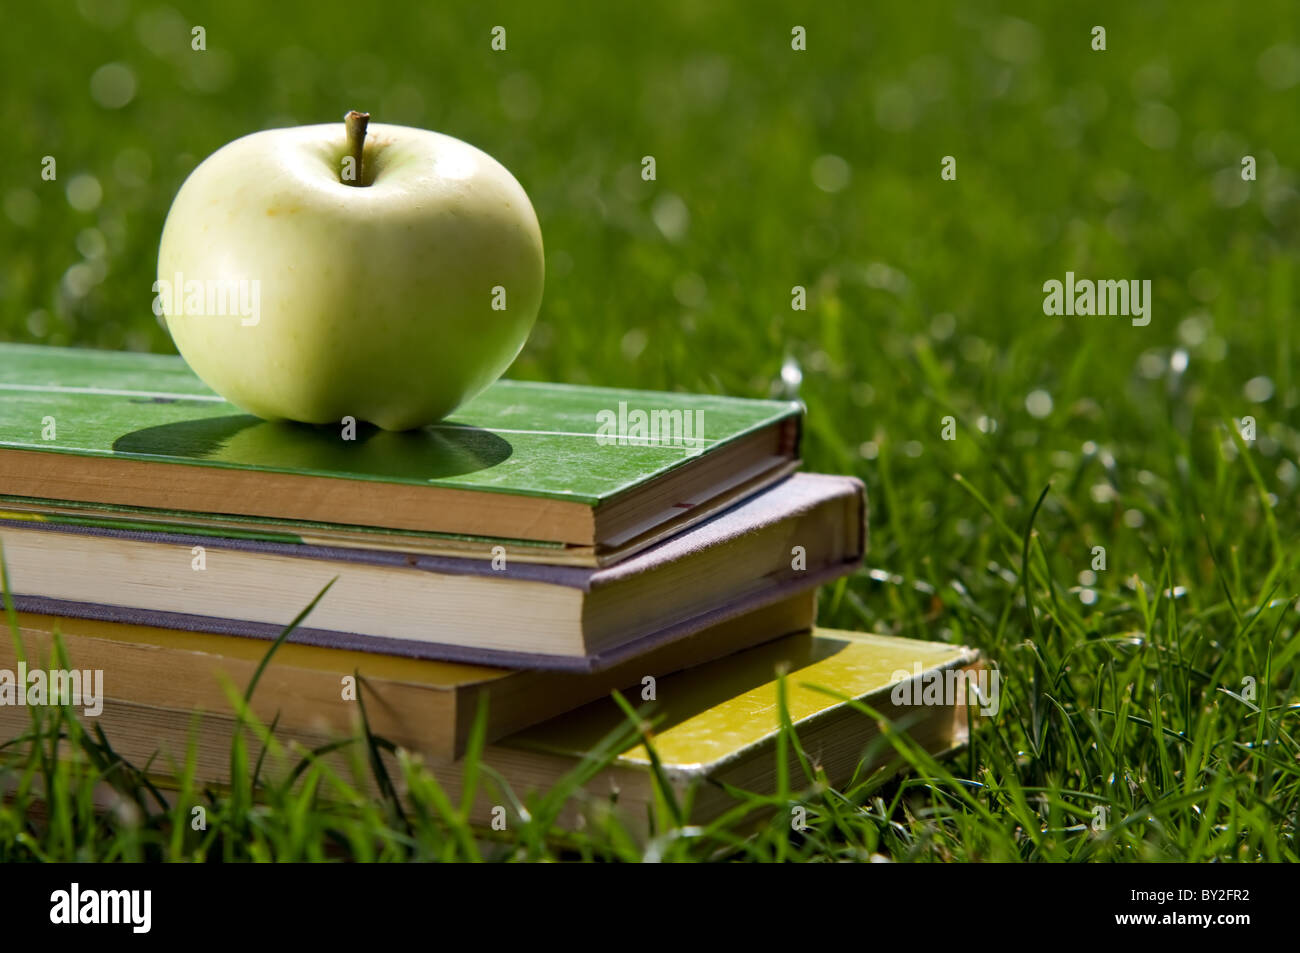 Apple on pile of books on grass. Education concept, back to school. - Stock Image